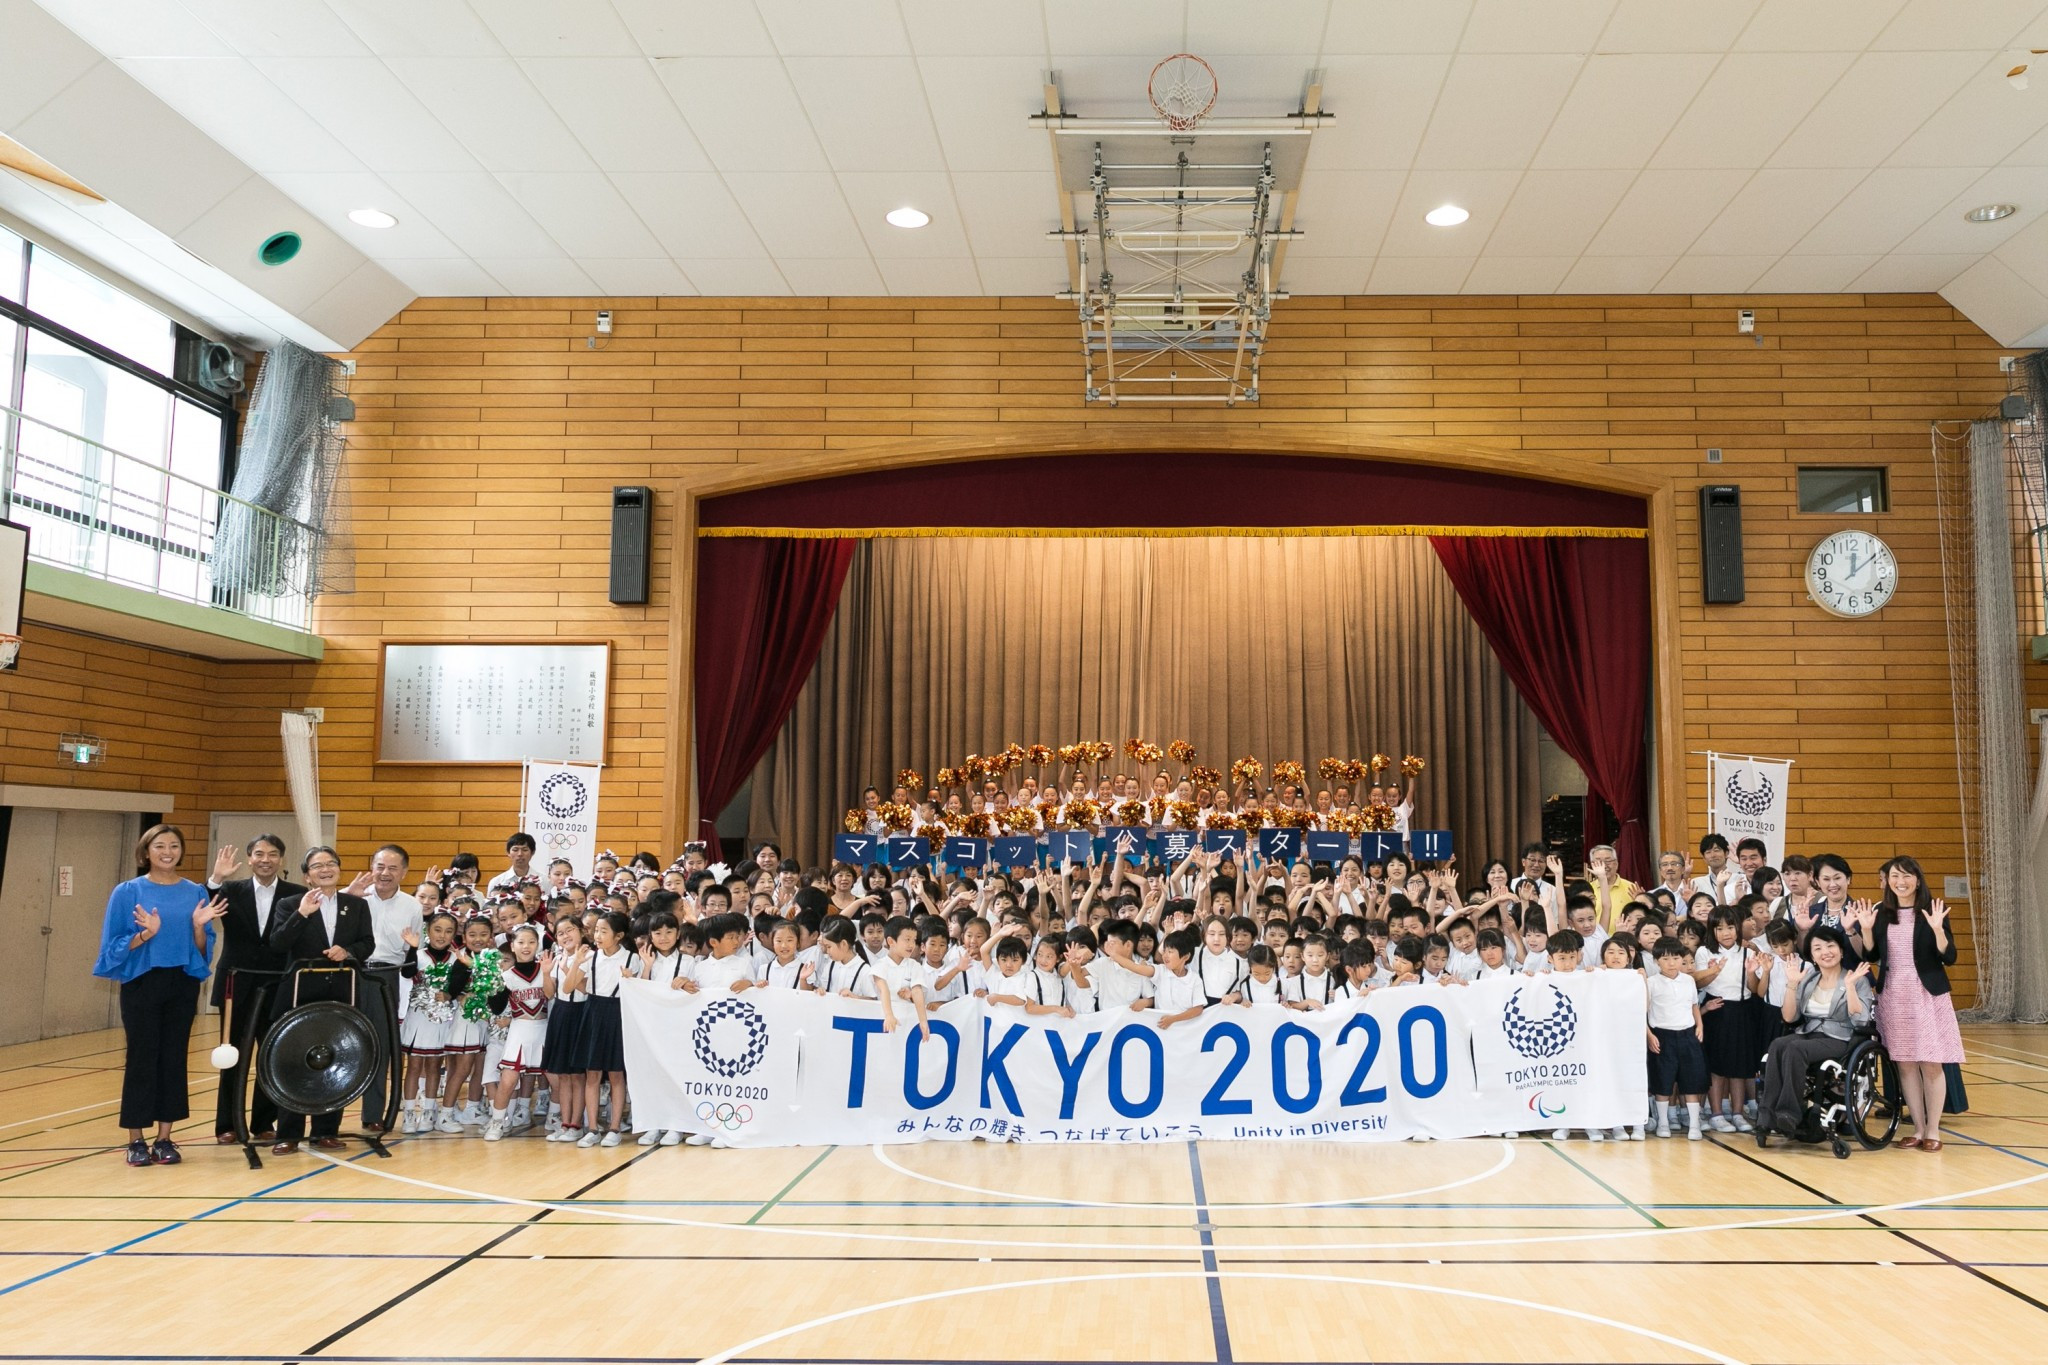 Entries can be submitted until the closing date on August 14 ©Tokyo 2020/Uta Mukuo